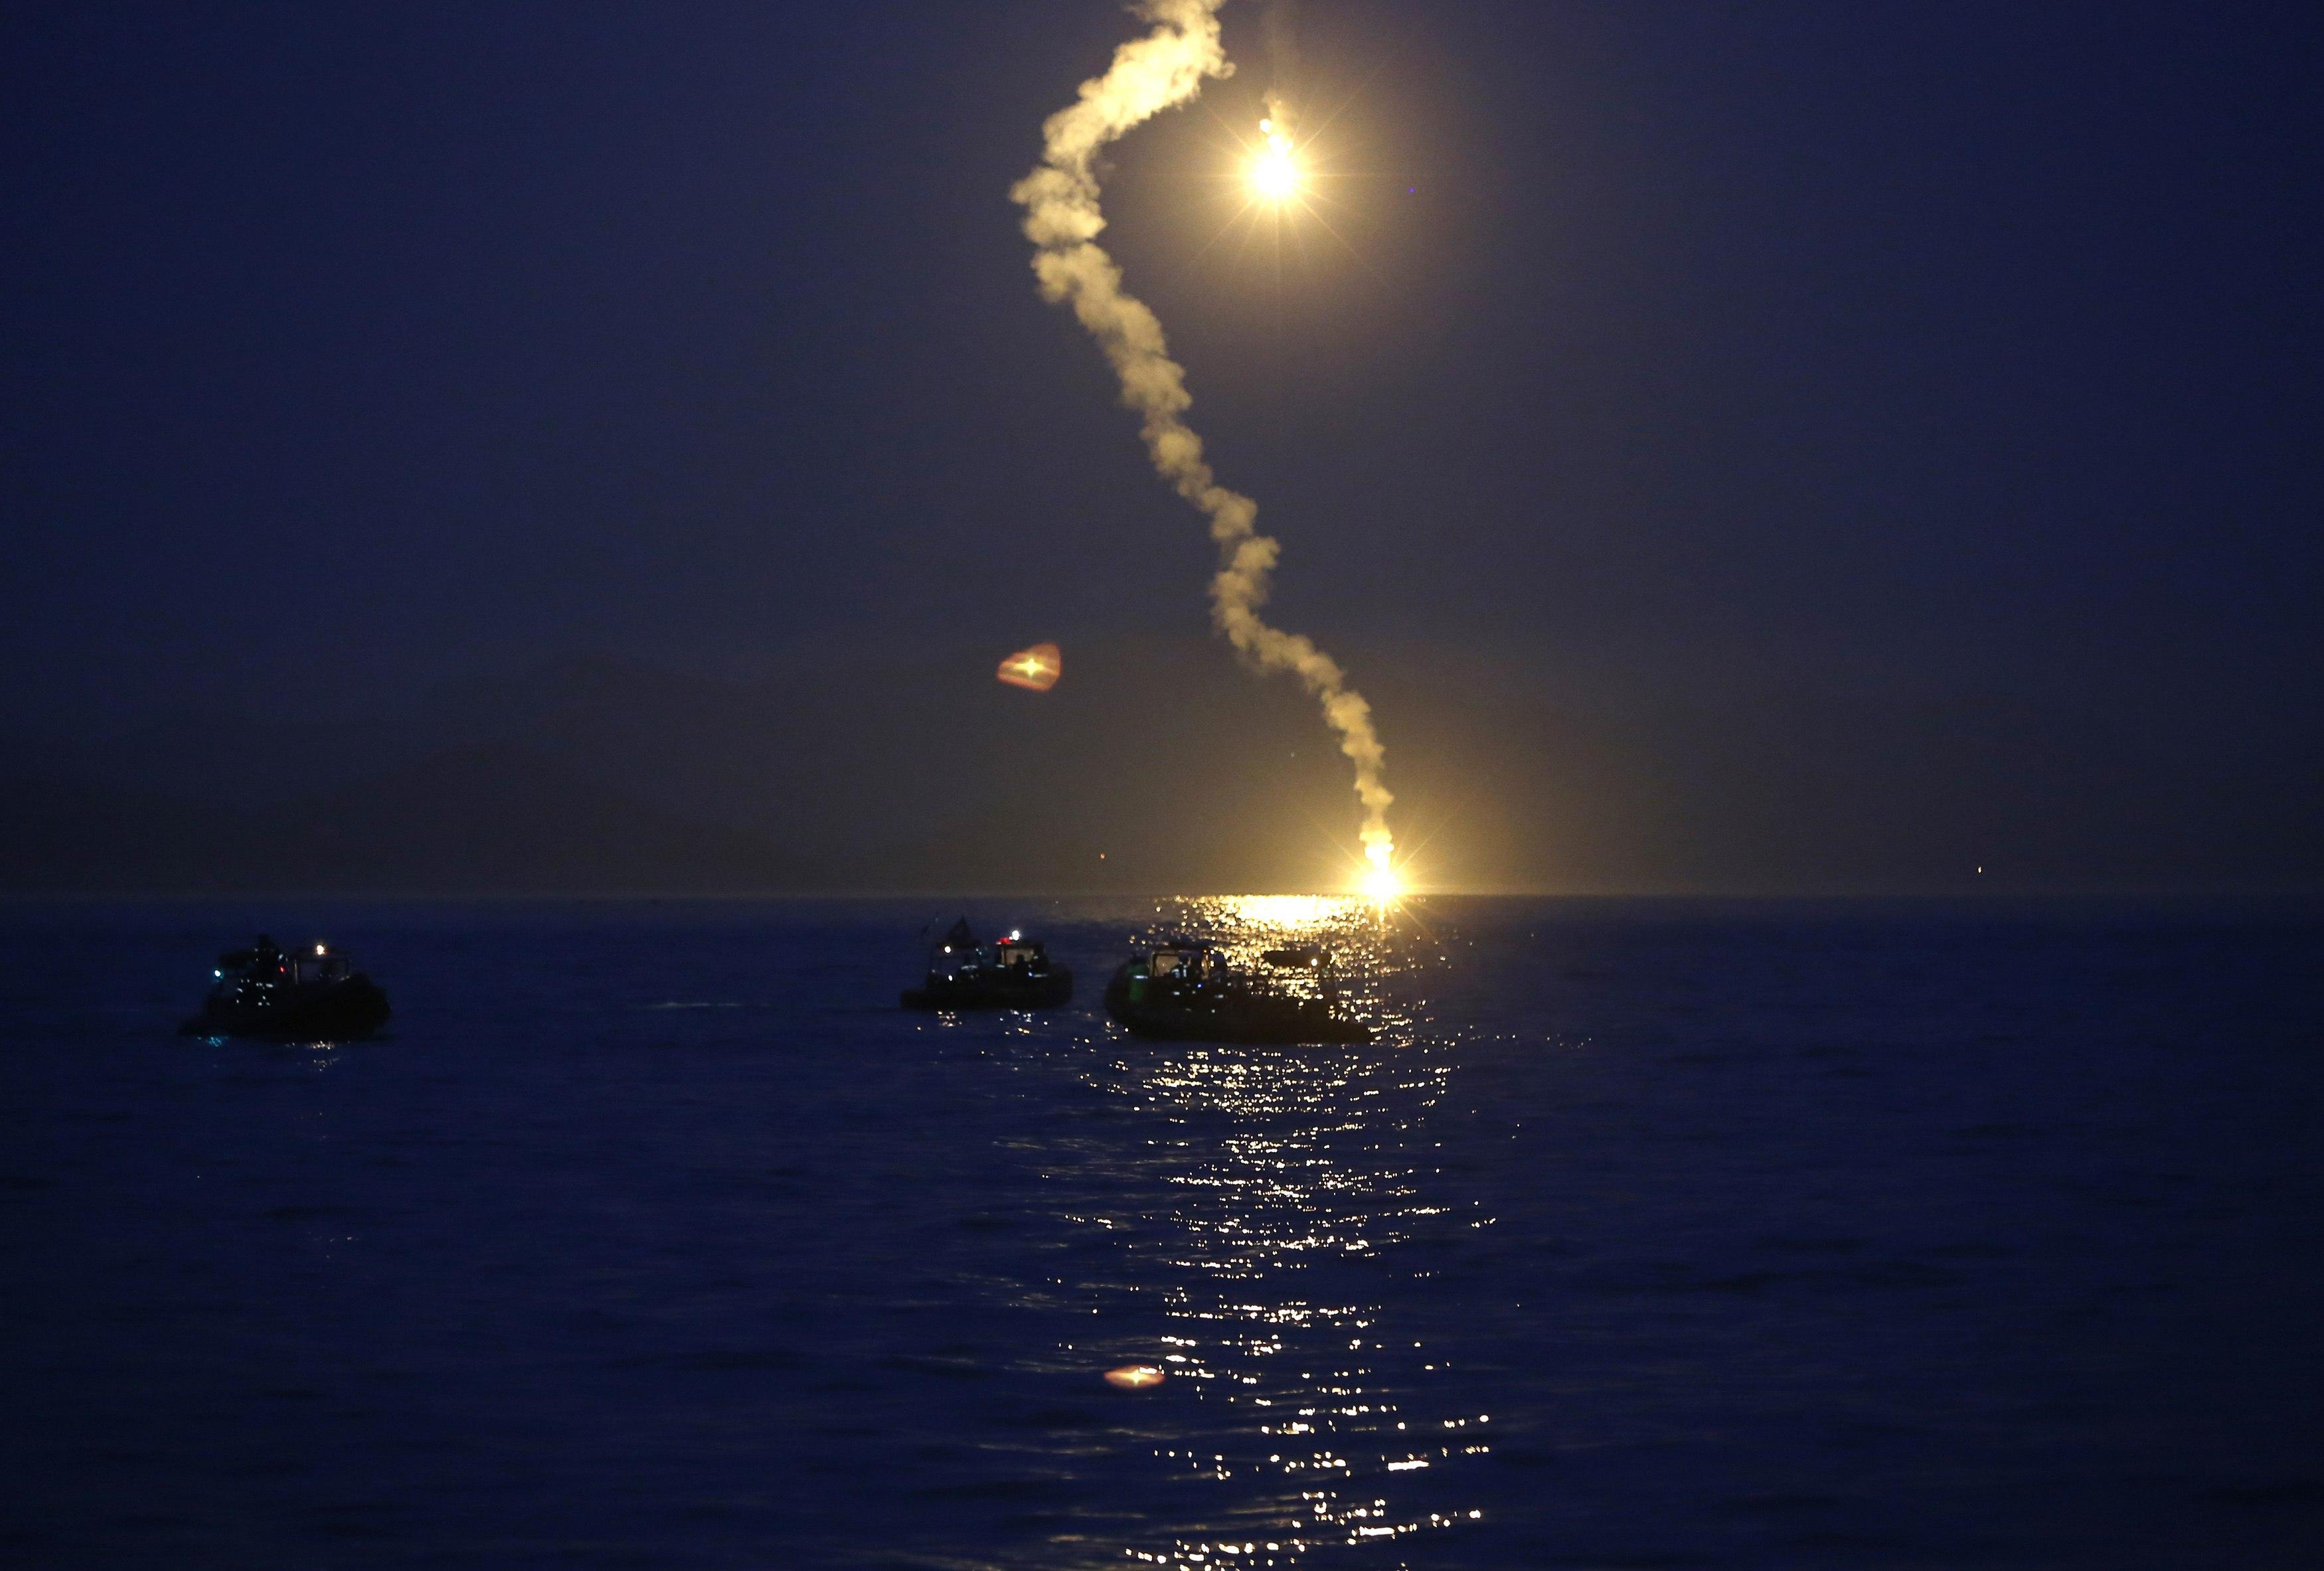 Korean Ferry Sinks - Rescue Efforts Night